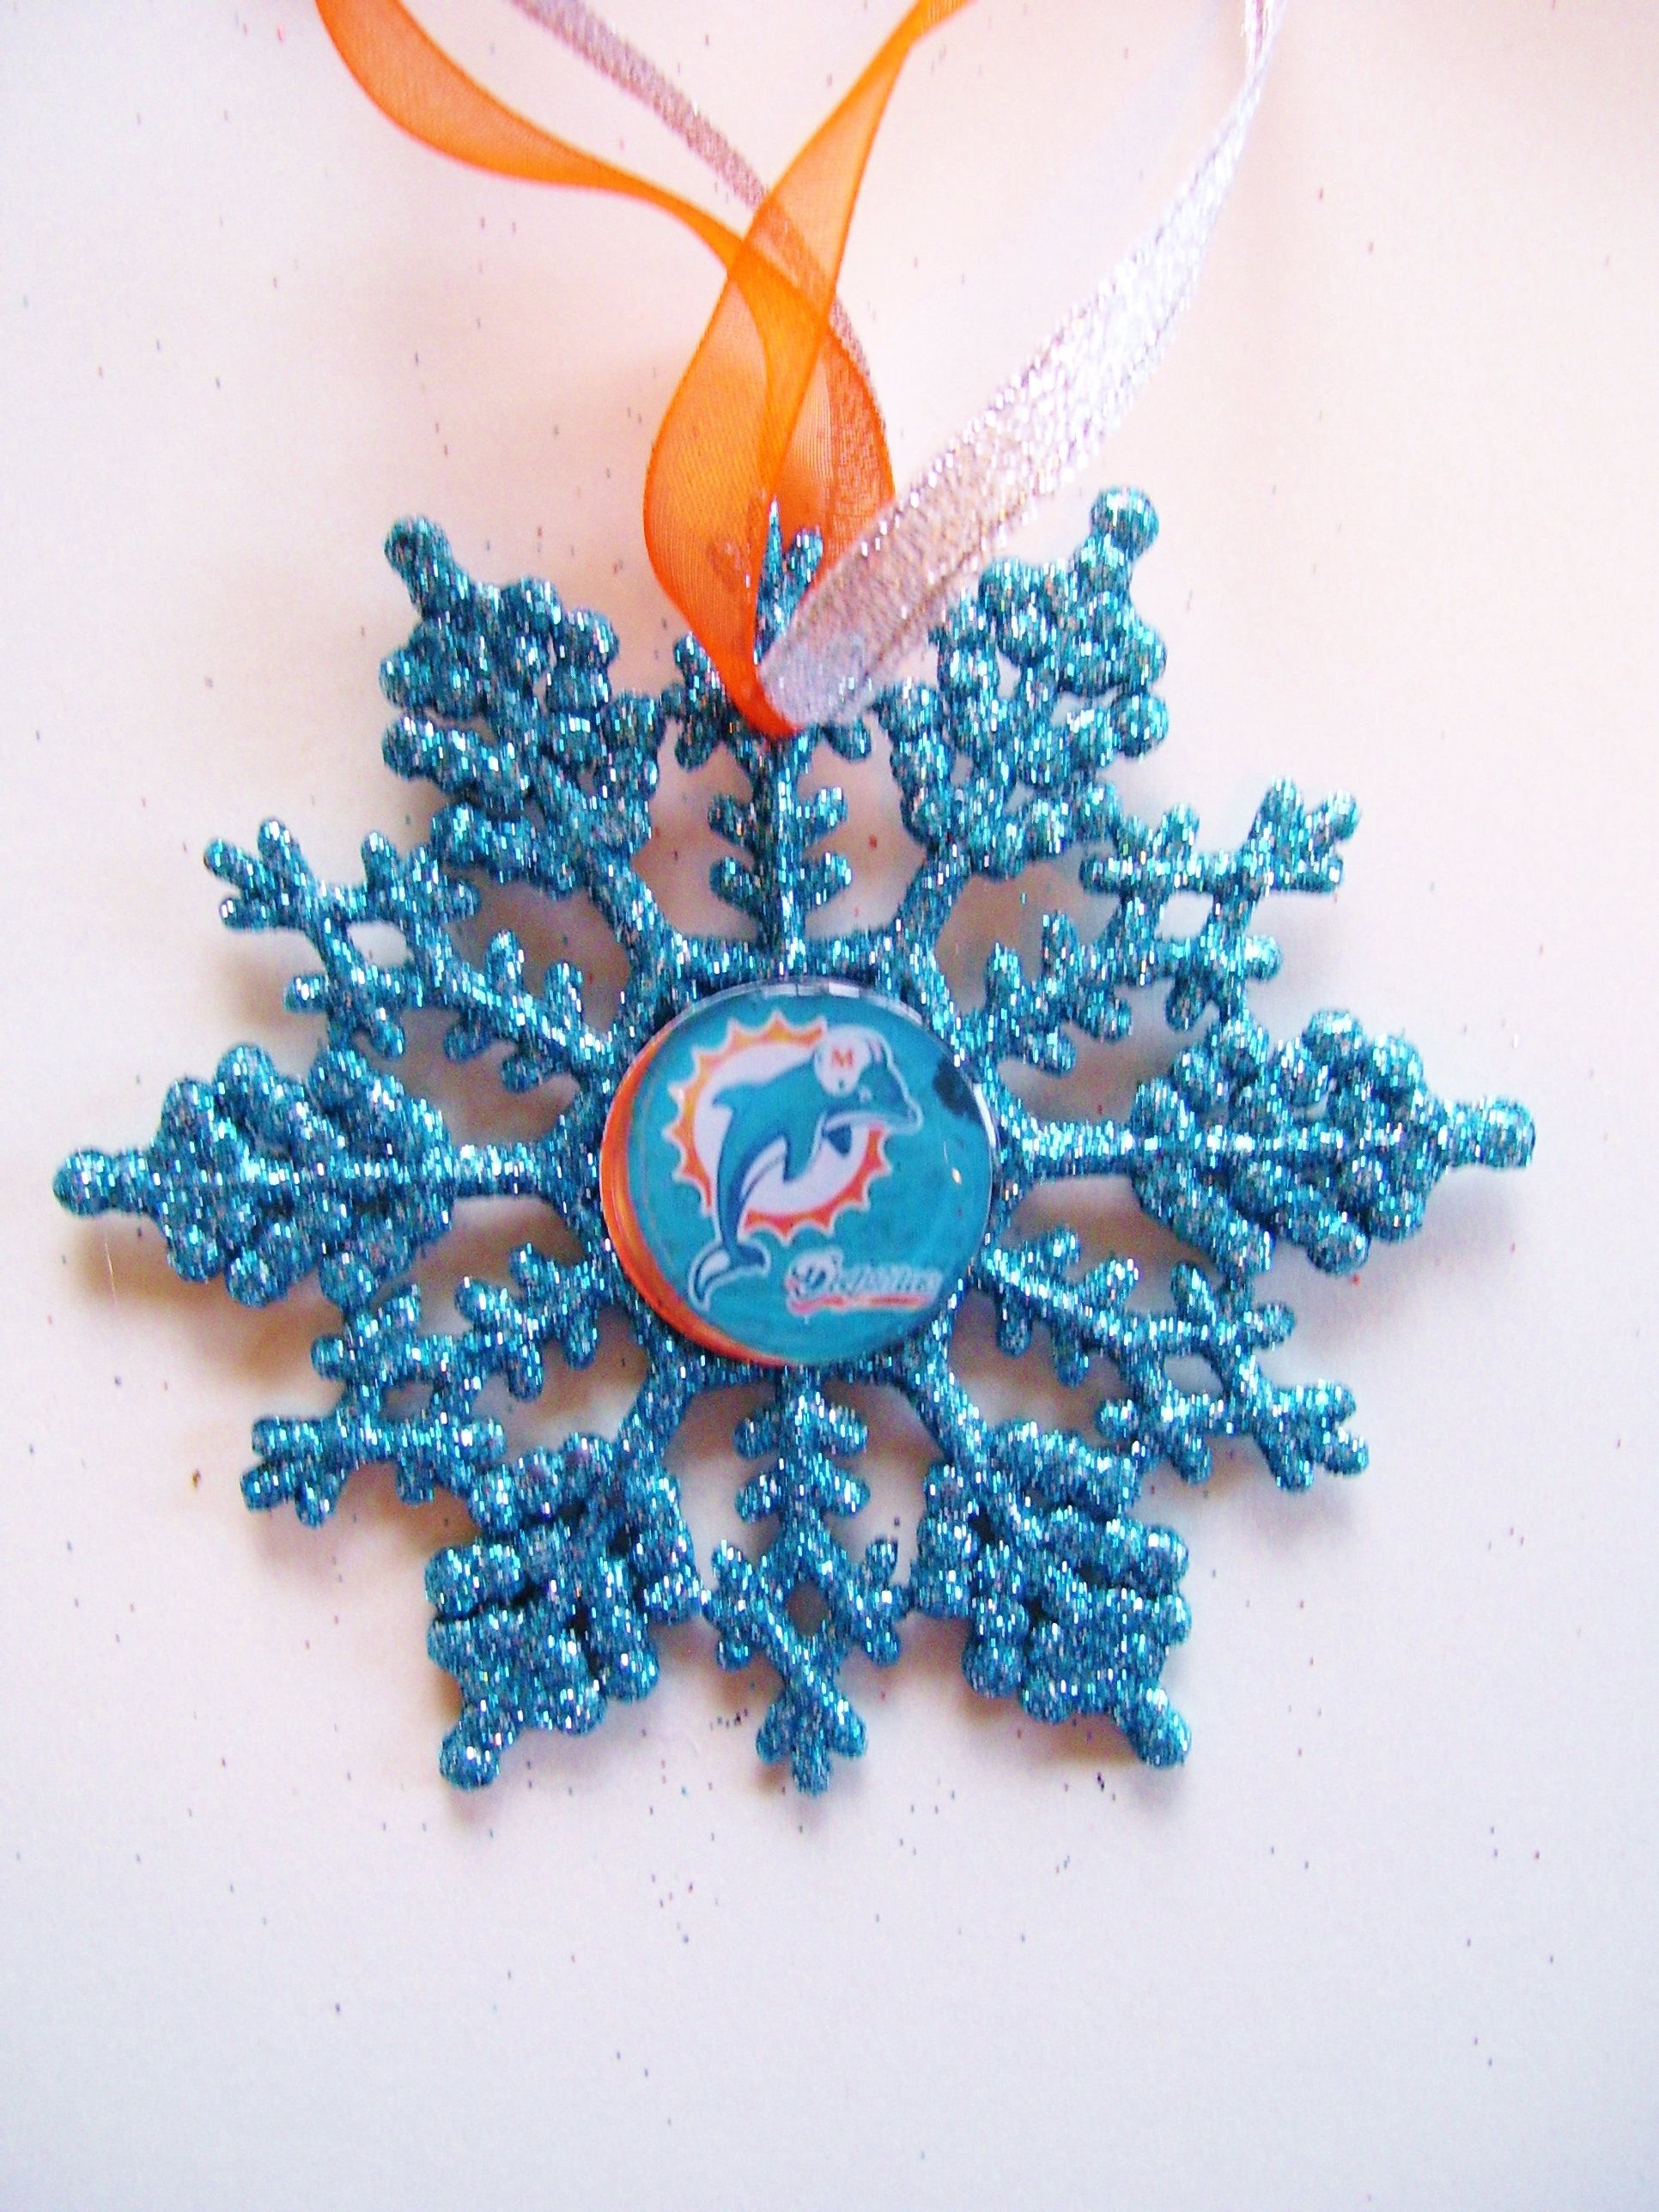 Miami Dolphins Football Handcrafted Snowflake By Zzsteamtime On Etsy